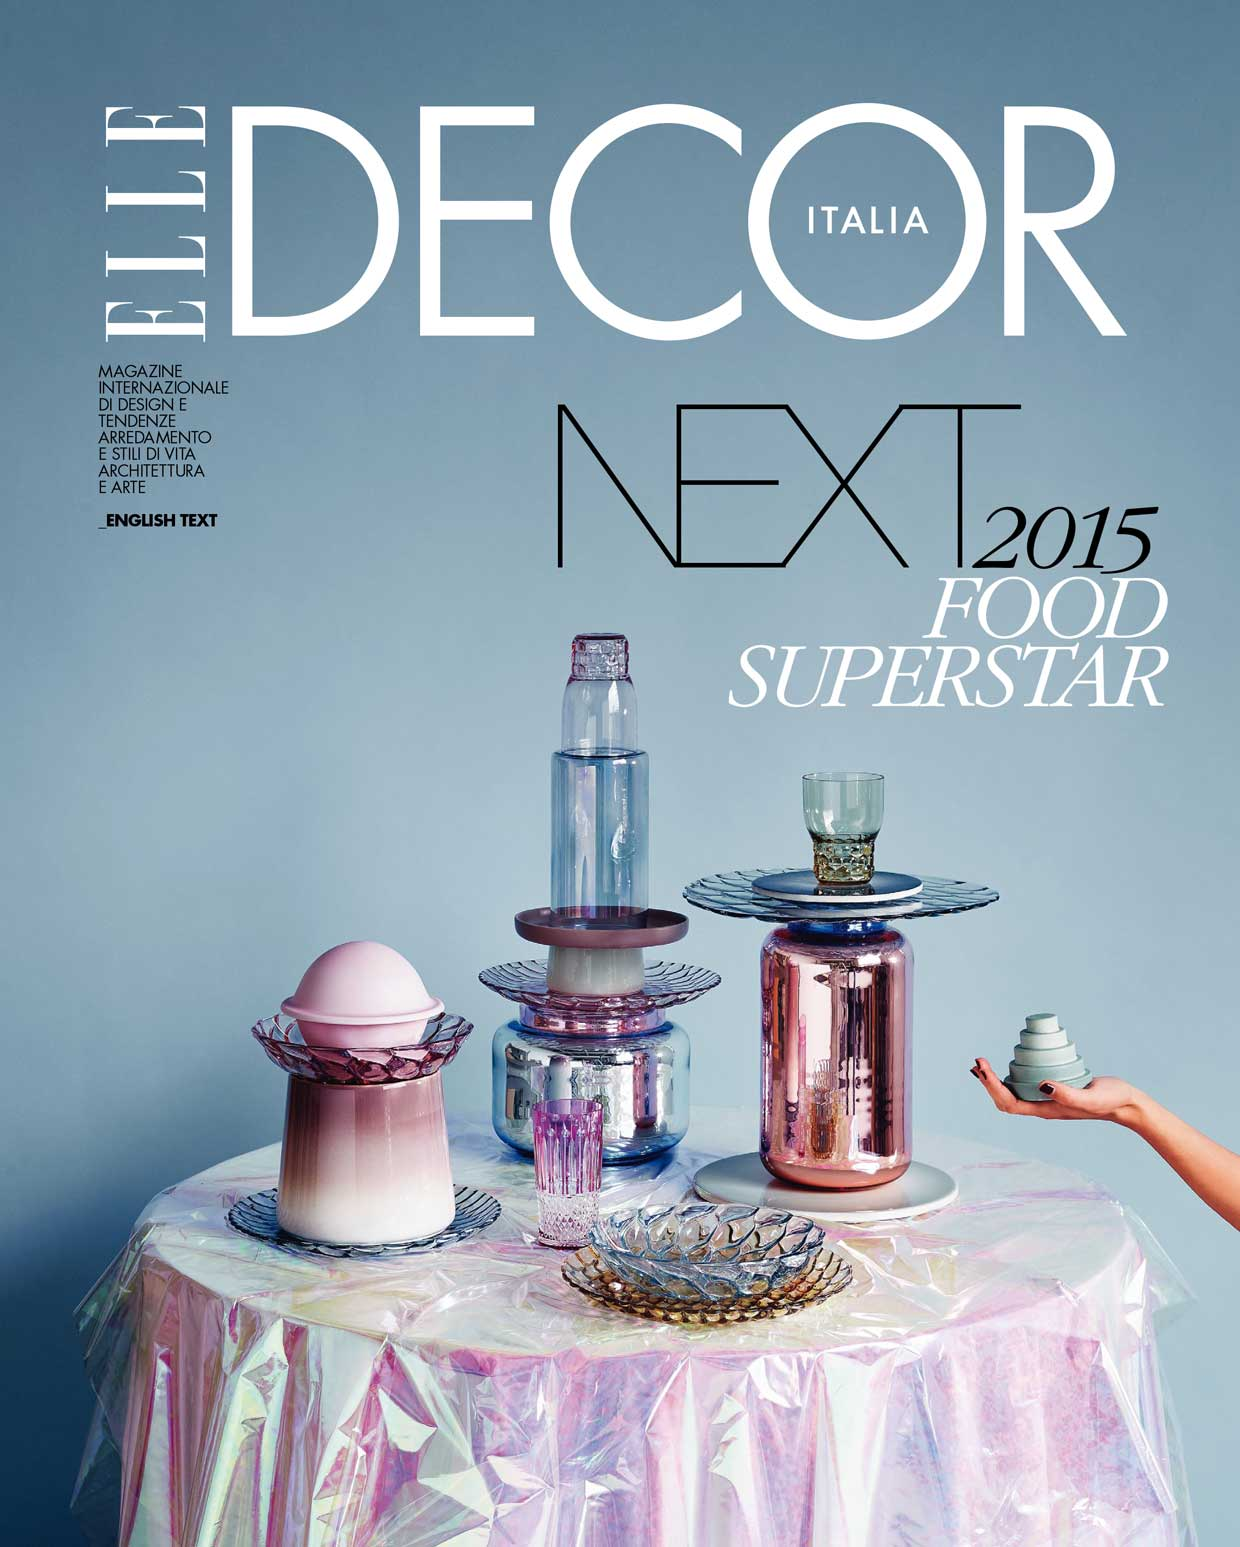 Elle Decor Italia February 2015 Cover NEXT | Yellowtrace